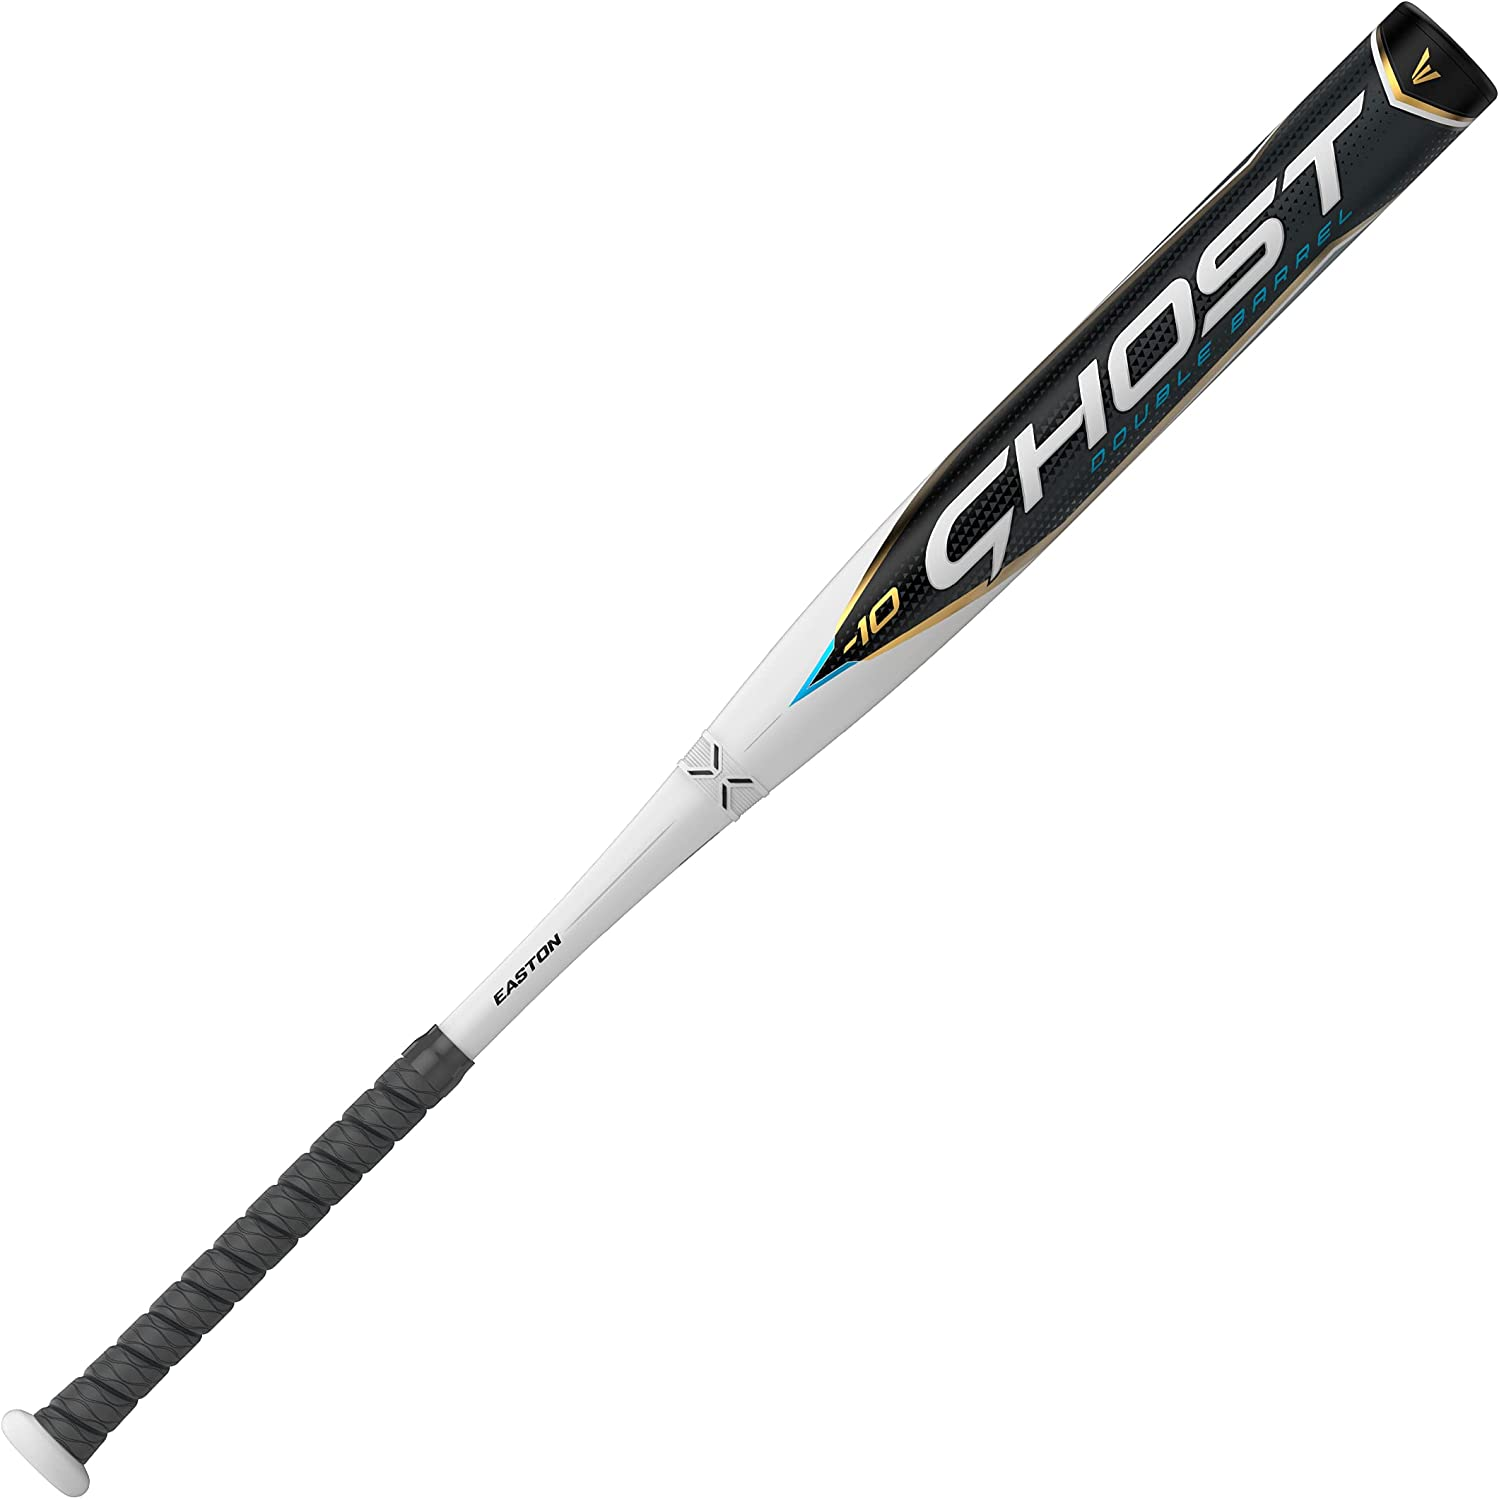 easton-2022-ghost-double-barrel-fastpitch-softball-bat-31-inch-21-oz FP22GH10-3121   <ul class=a-unordered-list a-vertical a-spacing-mini> <li><span class=a-list-item>PATENTED DOUBLE BARREL CONSTRUCTION provides the